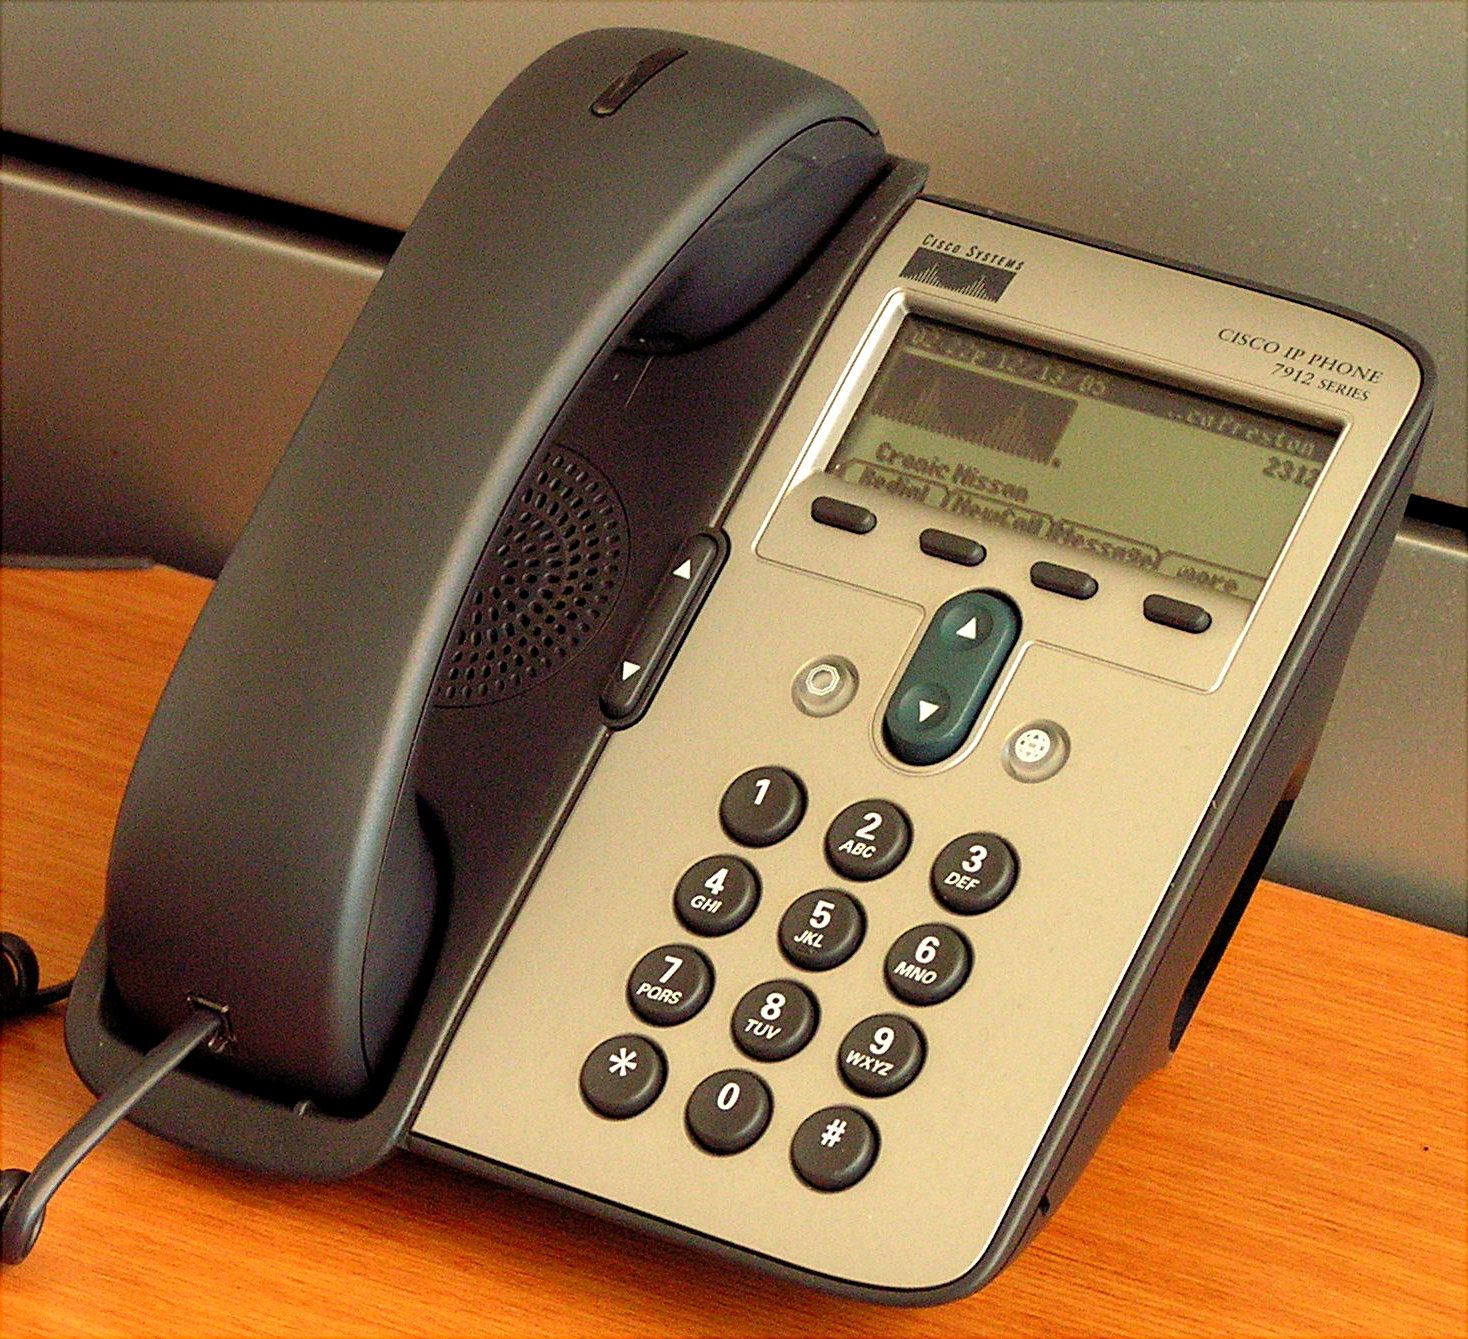 PSAP (Public Safety Answering Point) IP Telephone set